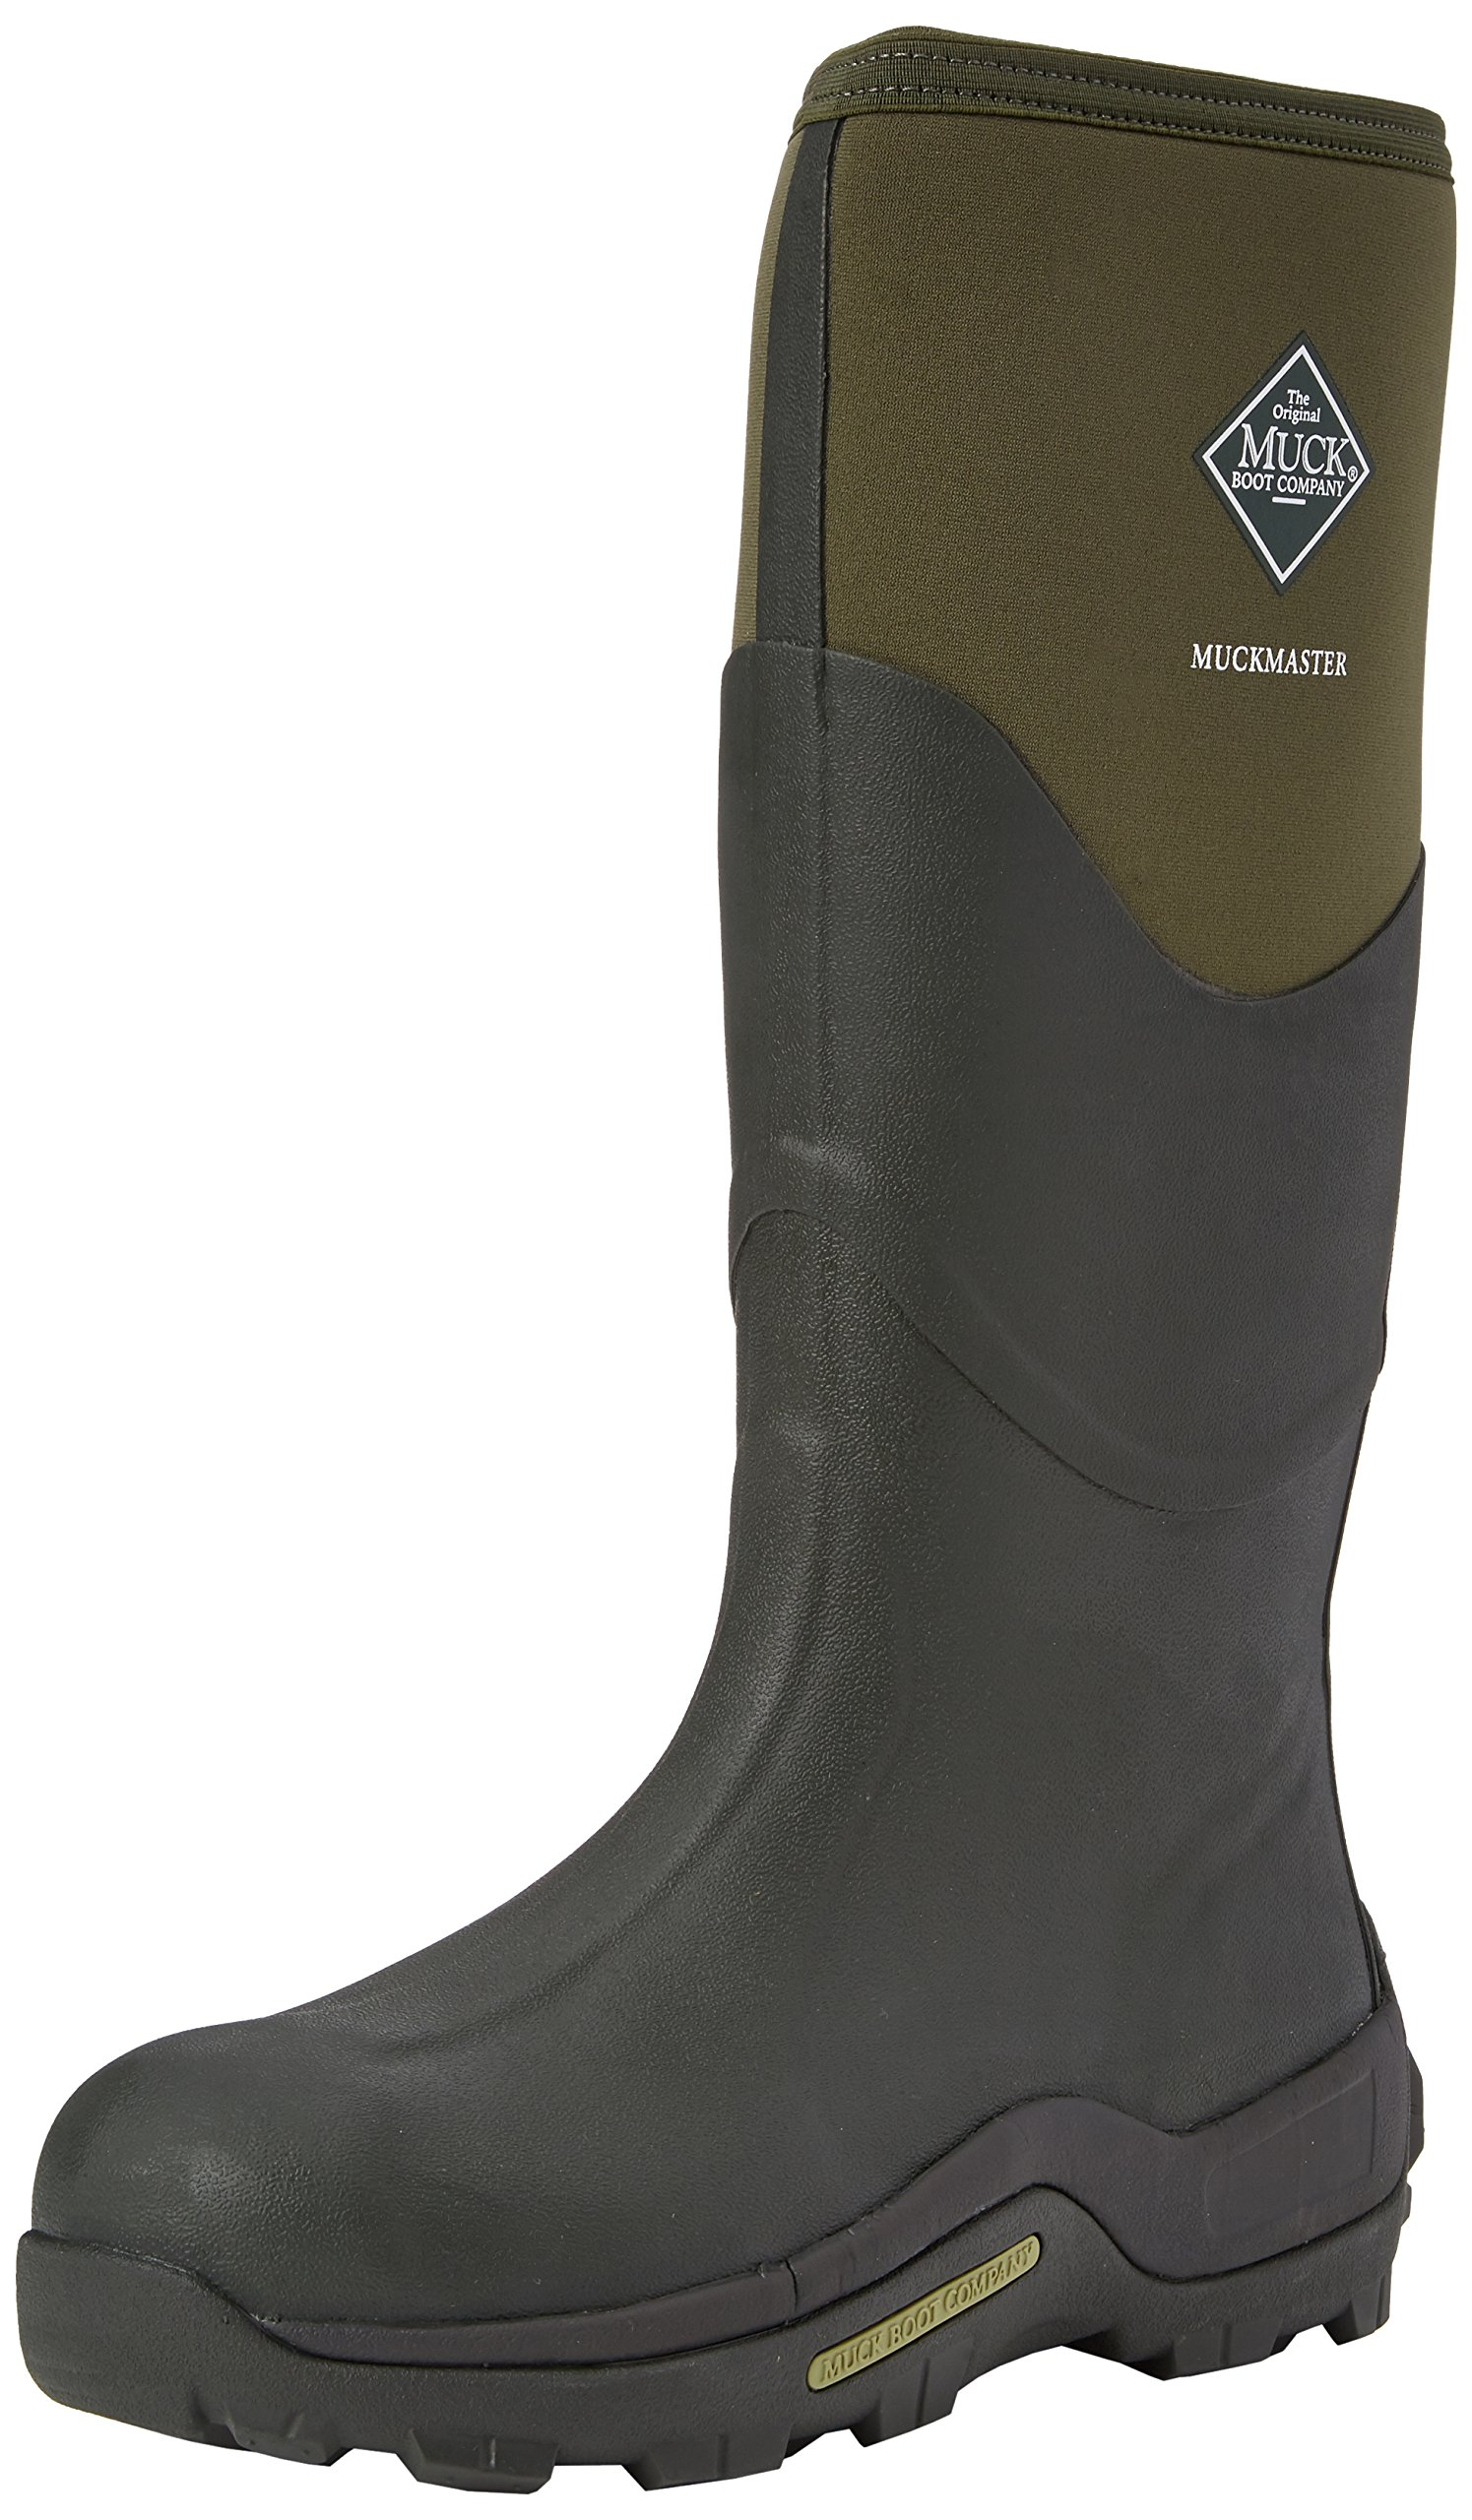 Muck Boot Muckmaster Wellies UK 12 Moss